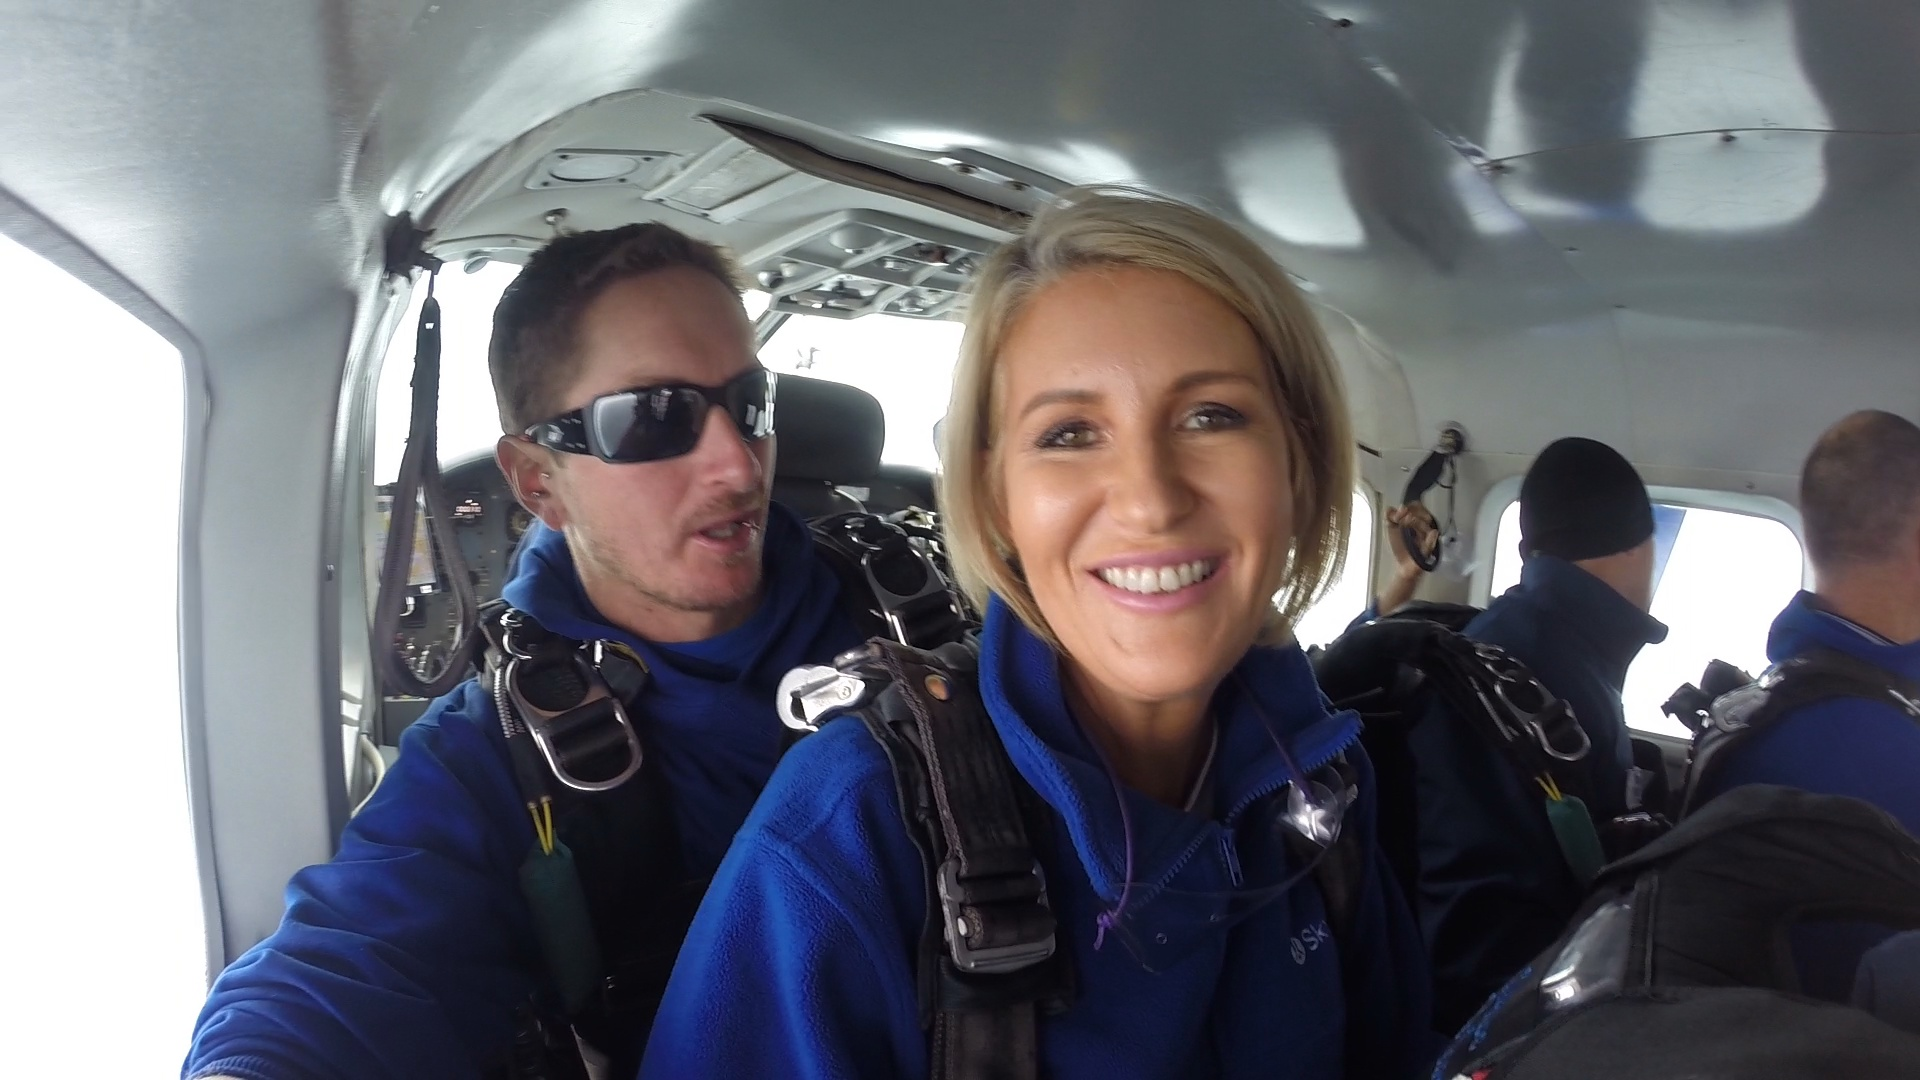 In the plane with my instructor Kevin.